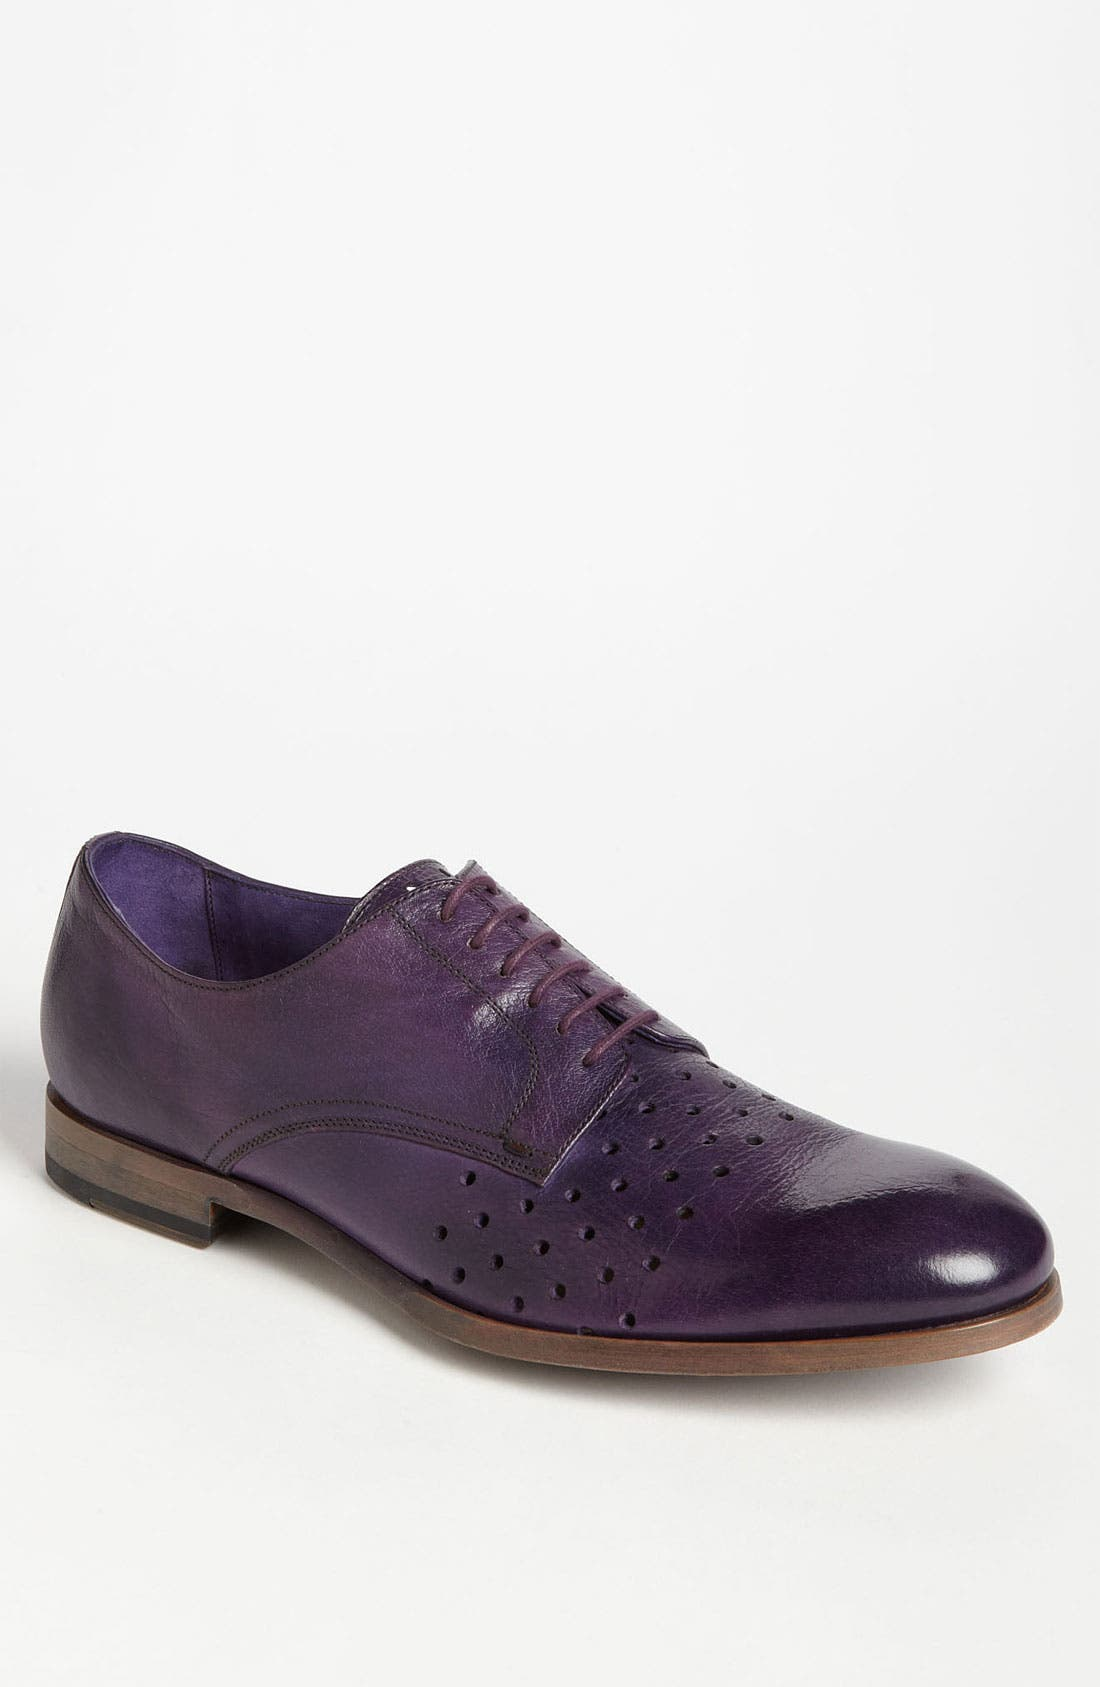 Main Image - Paul Smith 'Seagul' Perforated Derby